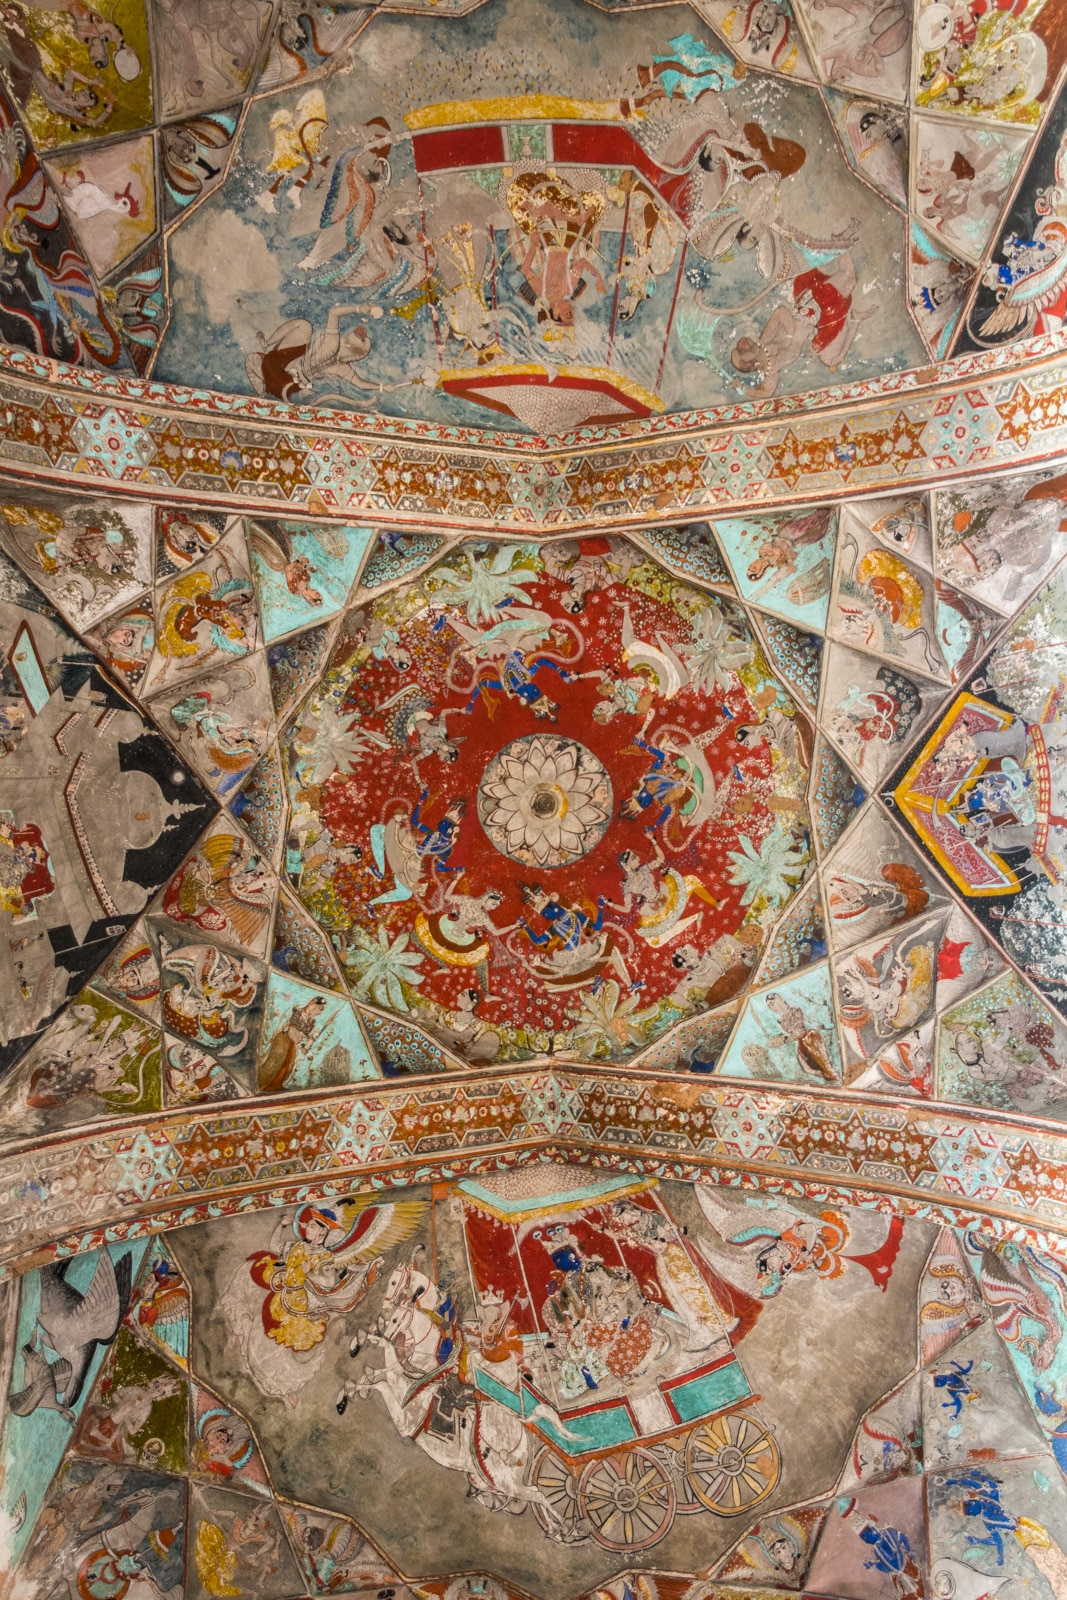 Fresco paintings on the ceiling of a palace in Bundi, Rajasthan, India